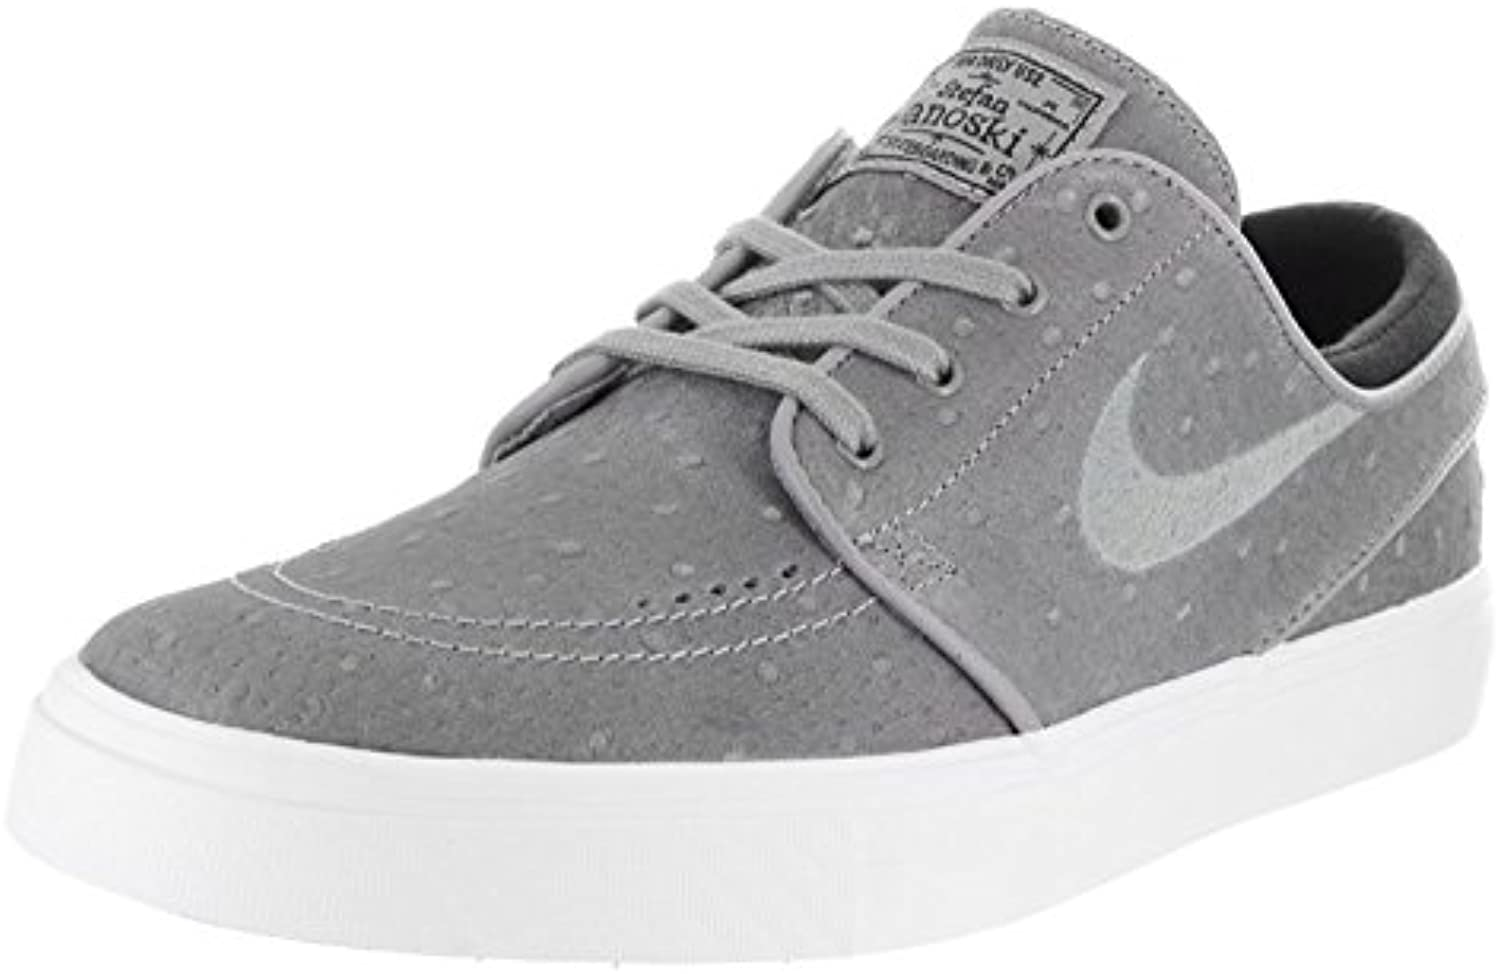 Nike Men's Stefan Janoski Canvas Skate Shoe, negro, blanco (Dust/Dust/Black/White), 42.5 D(M) EU/8 D(M) UK